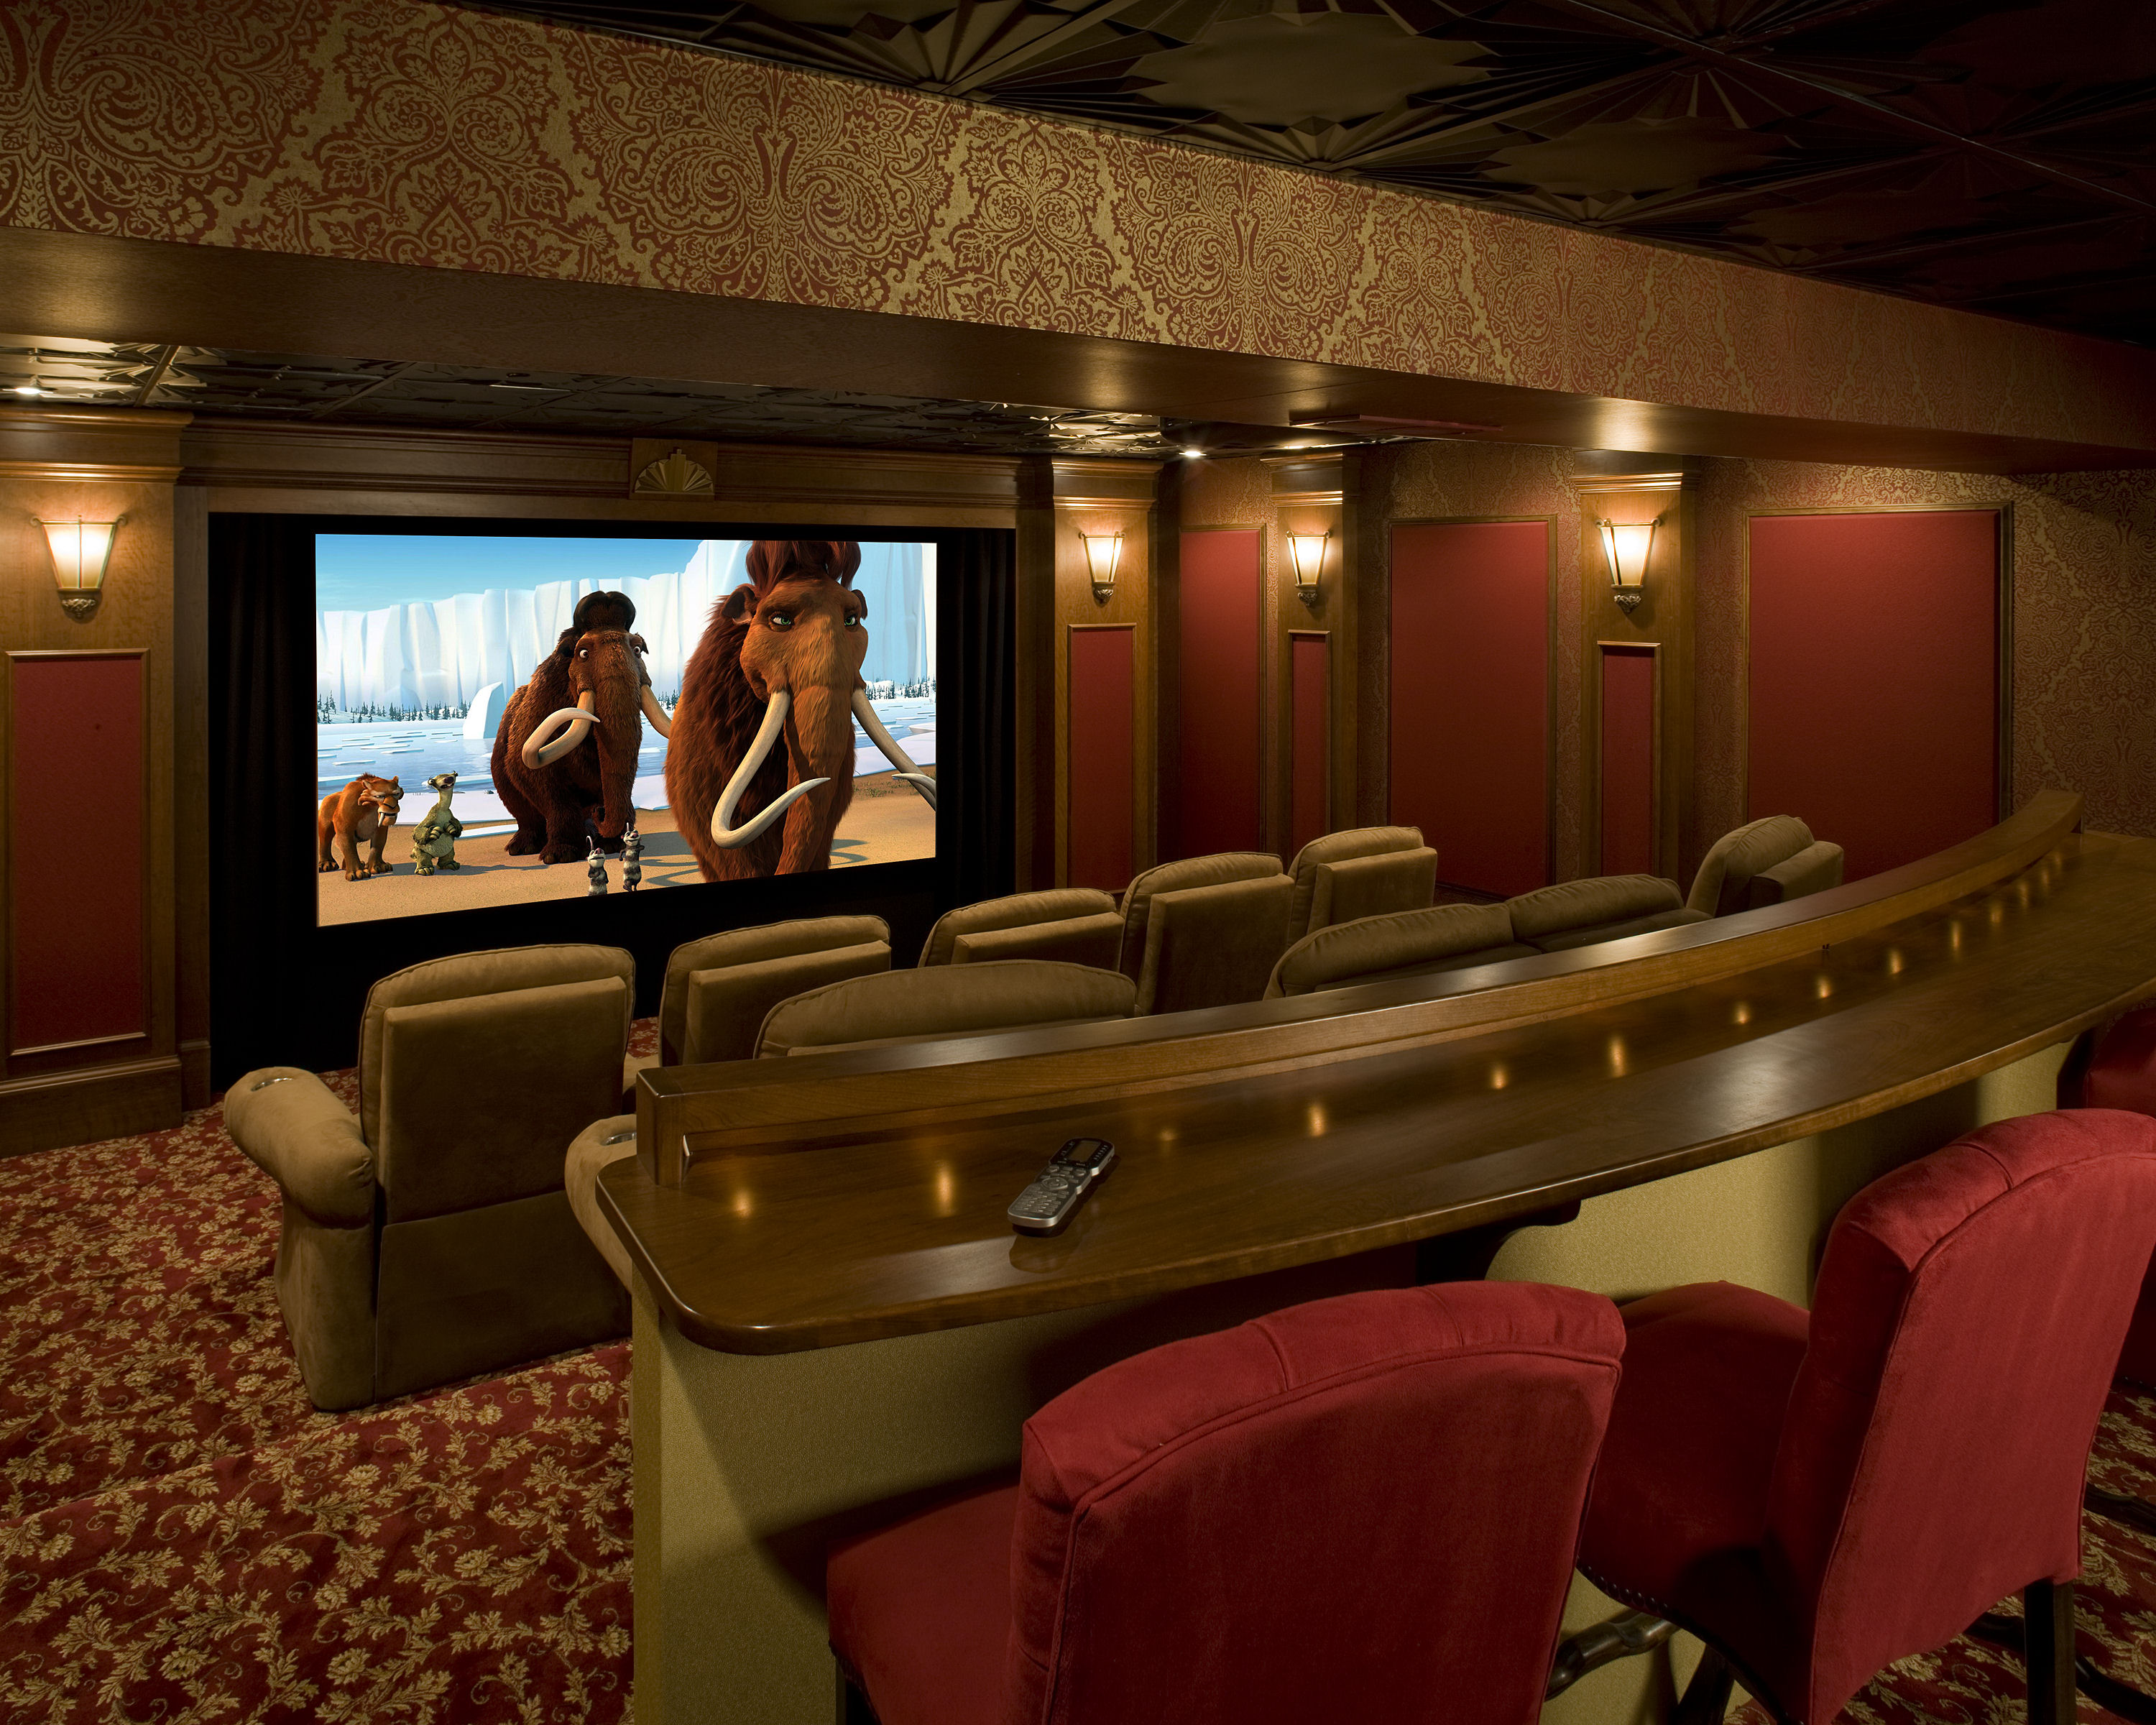 Performance Home Theater With Curtain Closed. English Pub Front View